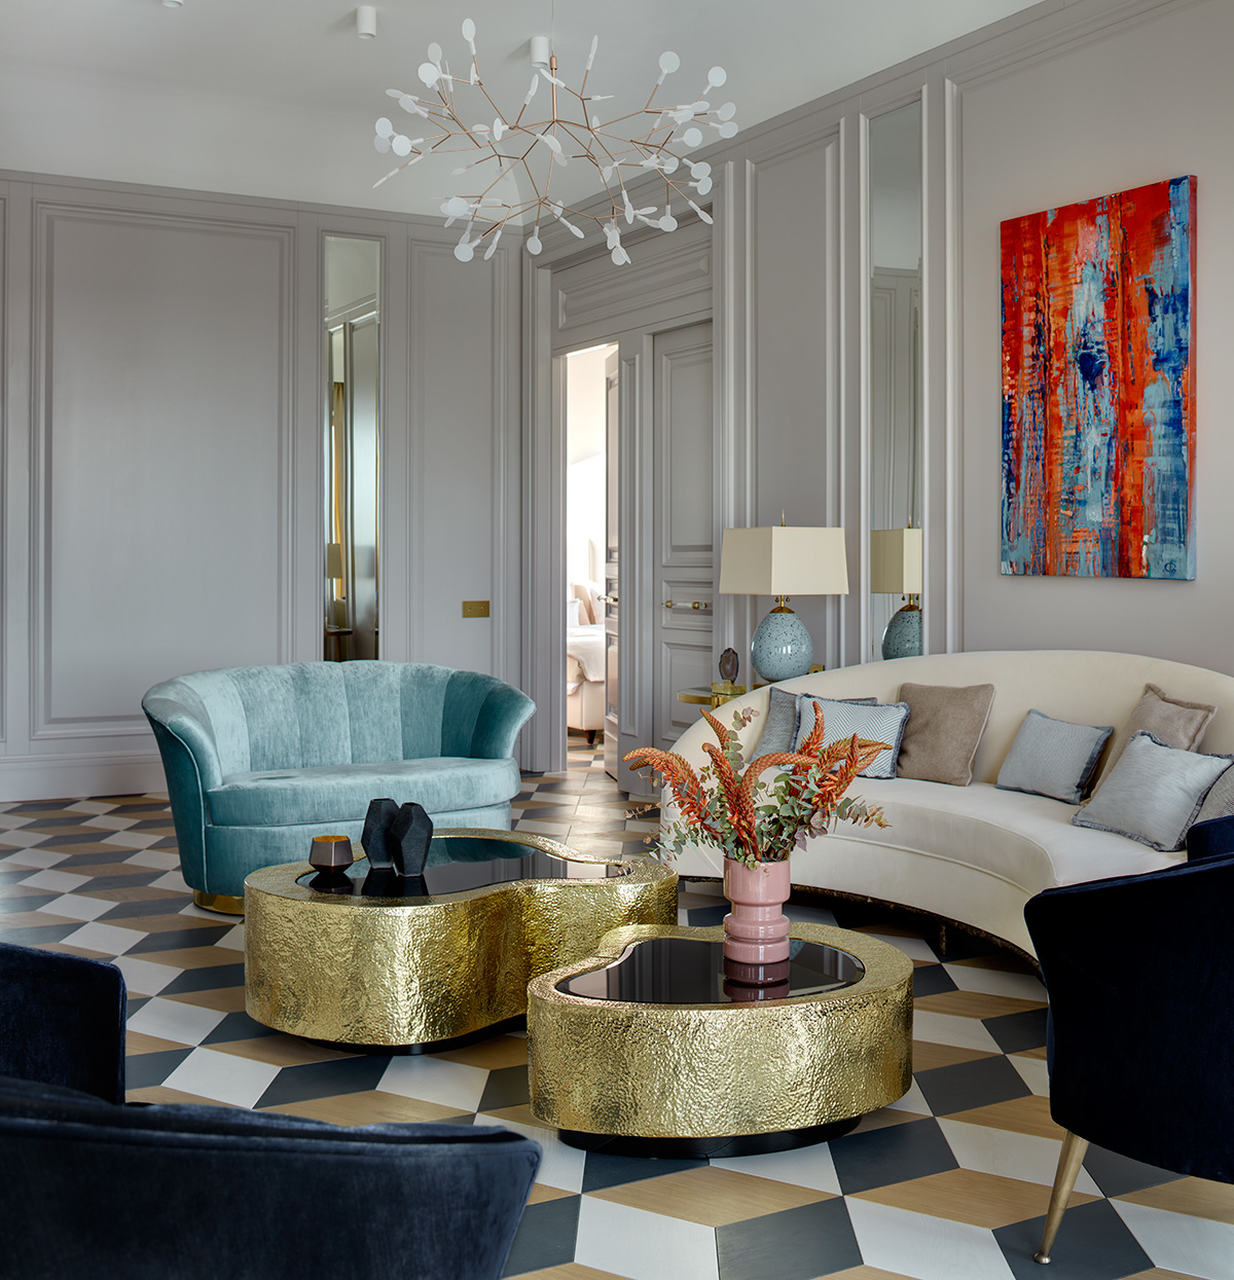 boca do lobo Boca do Lobo's Most Remarkable Interior Design Projects Ekaterina Lamashkova St Petersburg living room architecture design projects boca do lobo 2